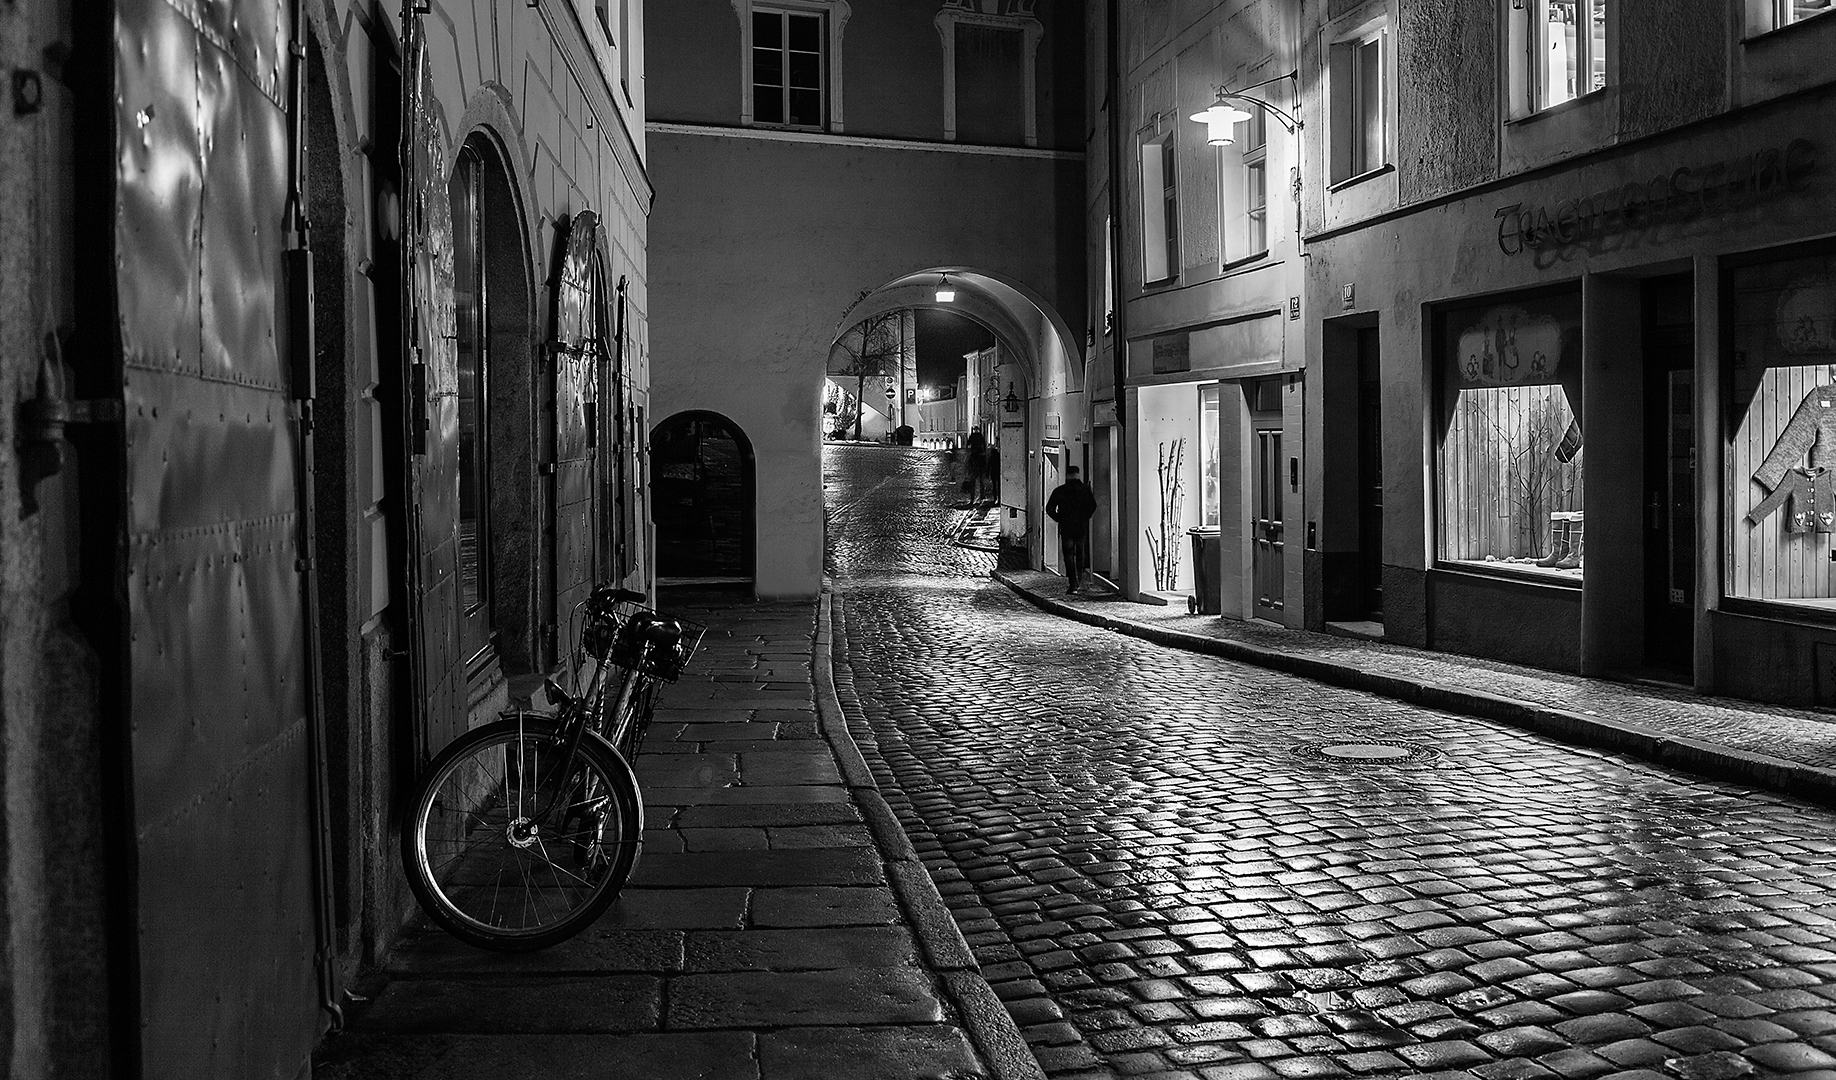 """2018 Open Monochrome Section """"Cobblestone Road"""" by John Murphy AAPS: Awarded APS Gold Medal"""